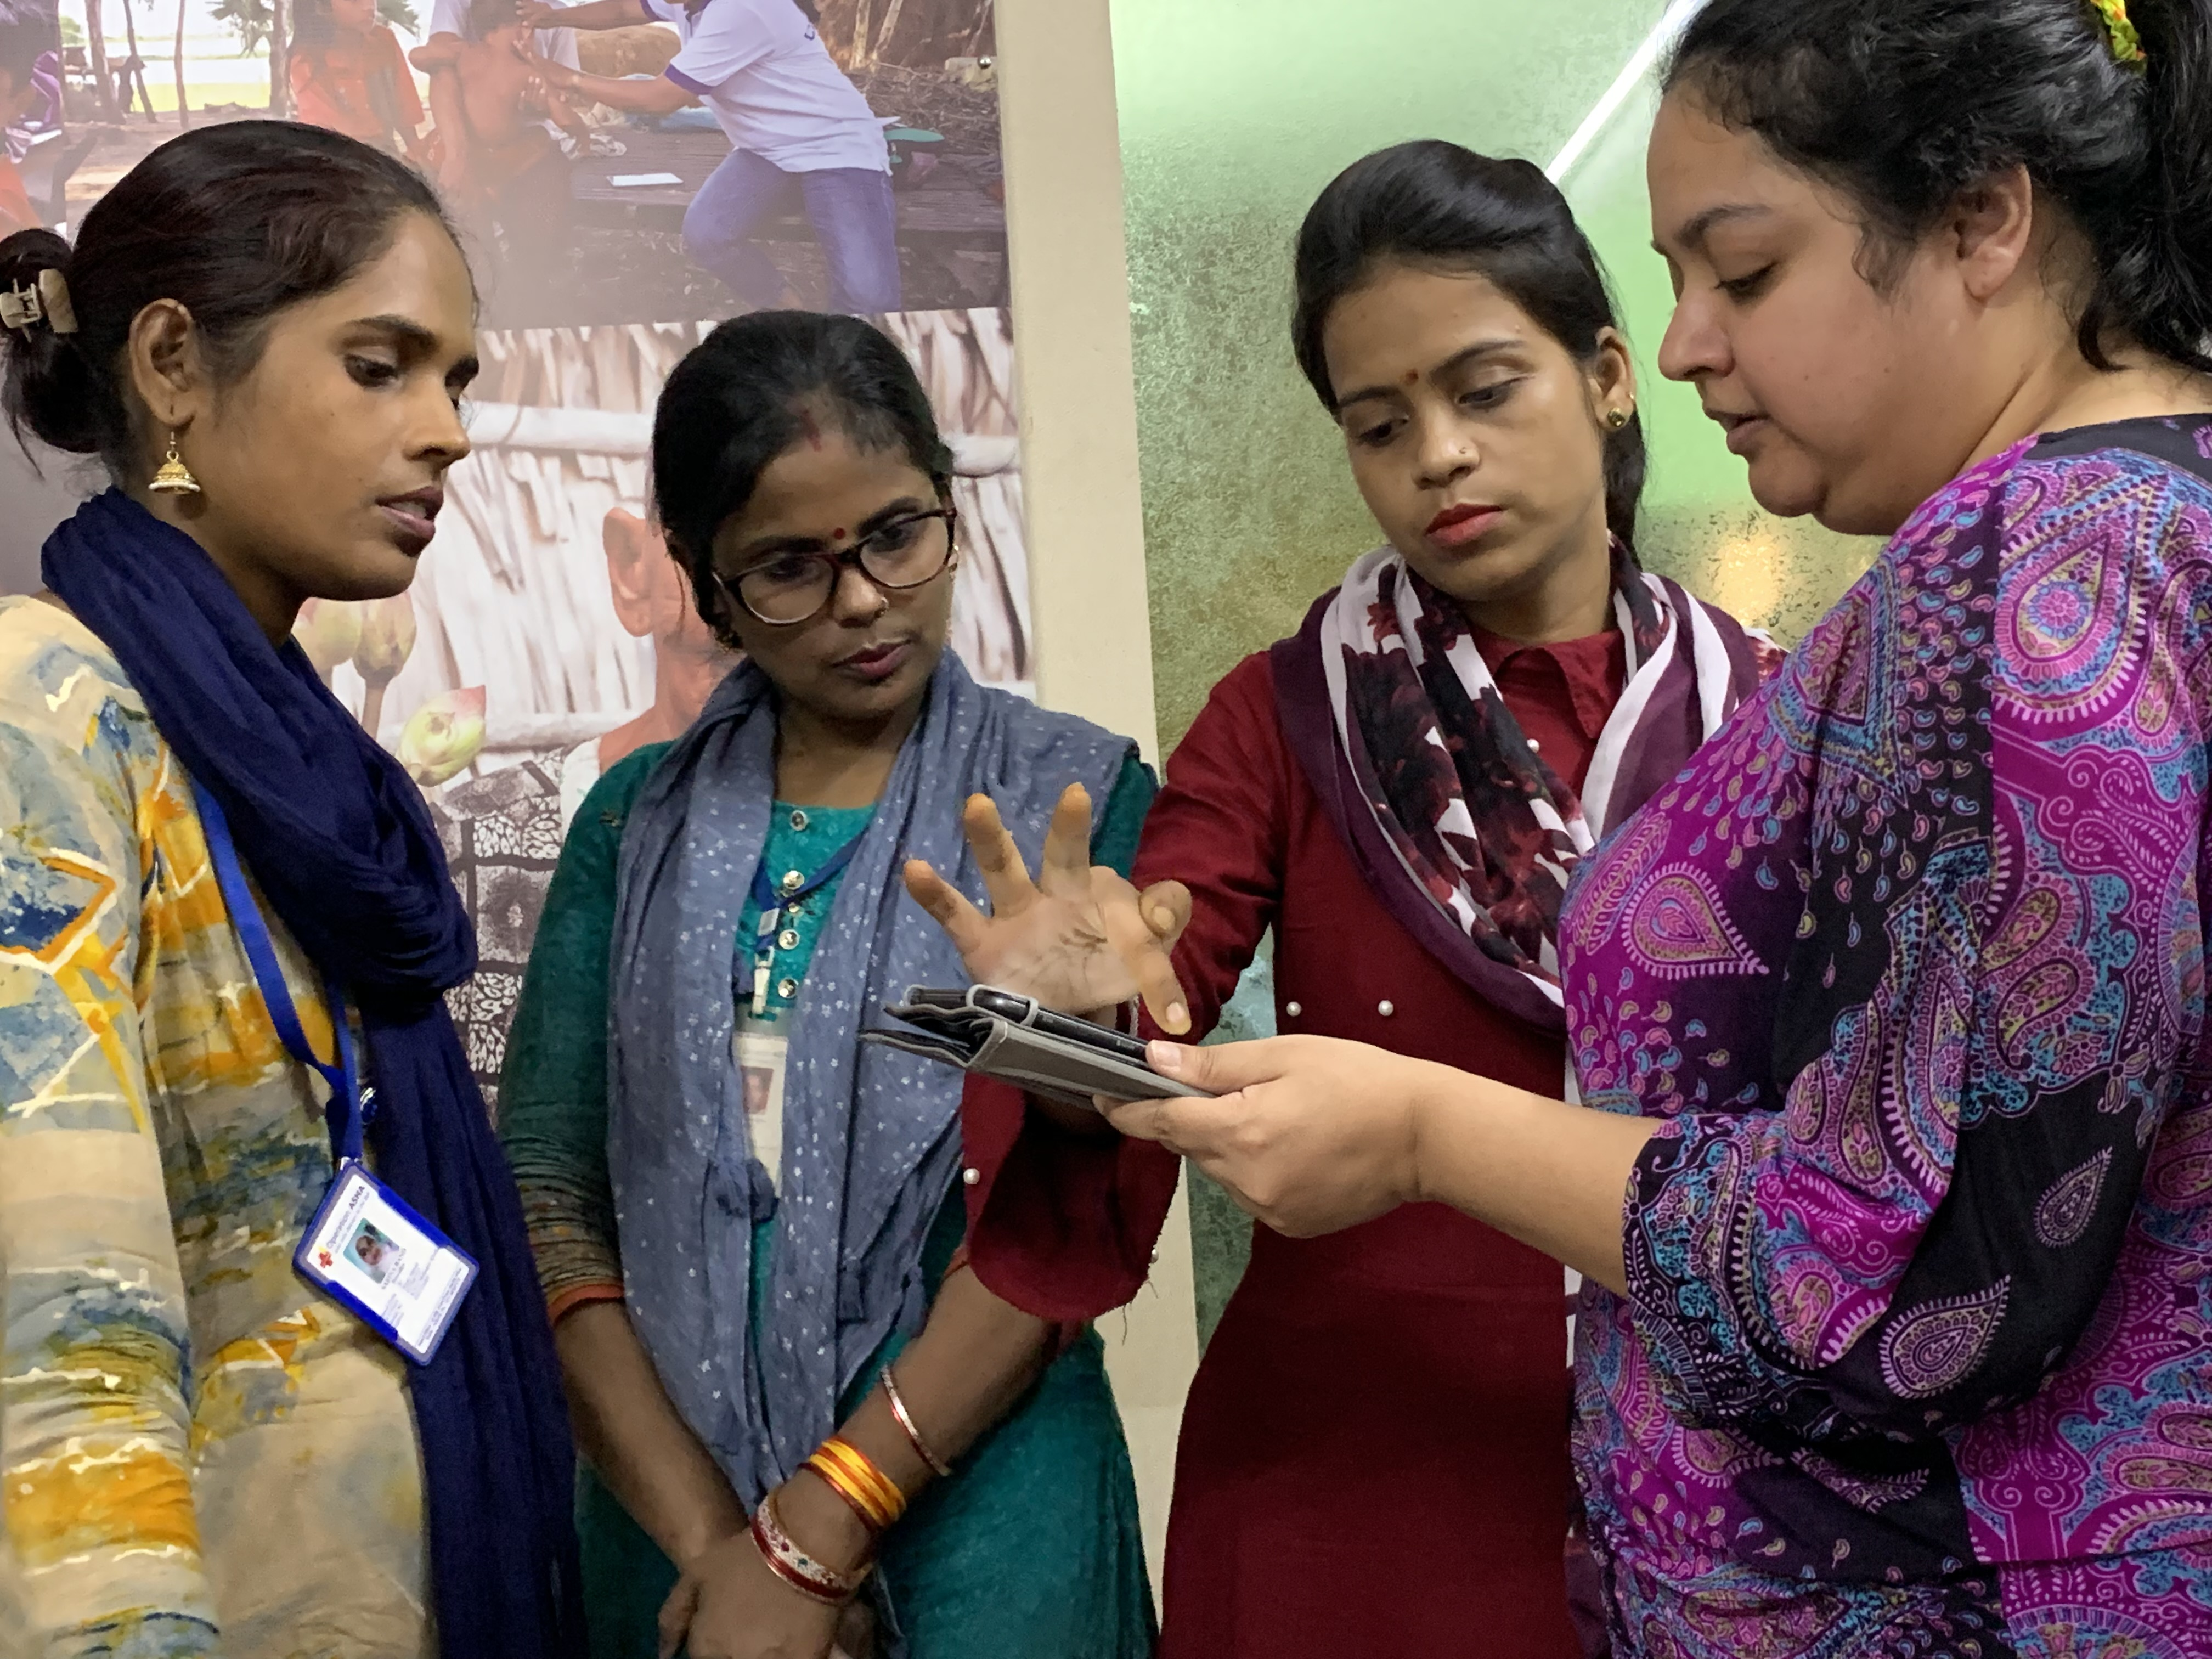 Four Operation ASHA employees looking at a tablet and pointing at and discussing different features